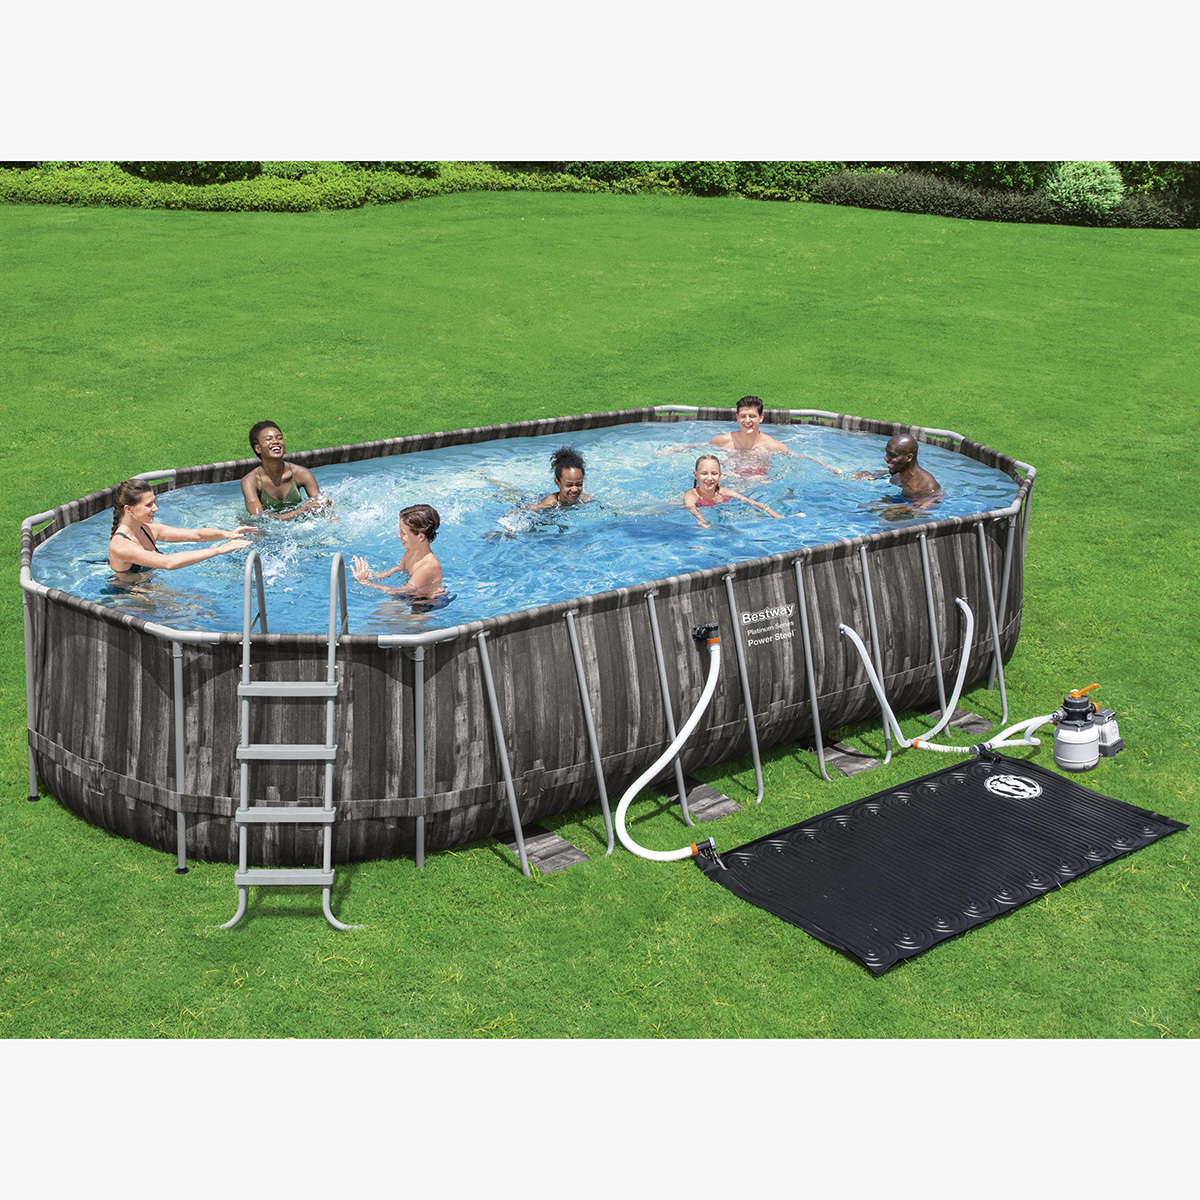 Bestway 22 x 12 ft Power Steel Oval Frame Pool with Sand Filter Pump, Solar Powe